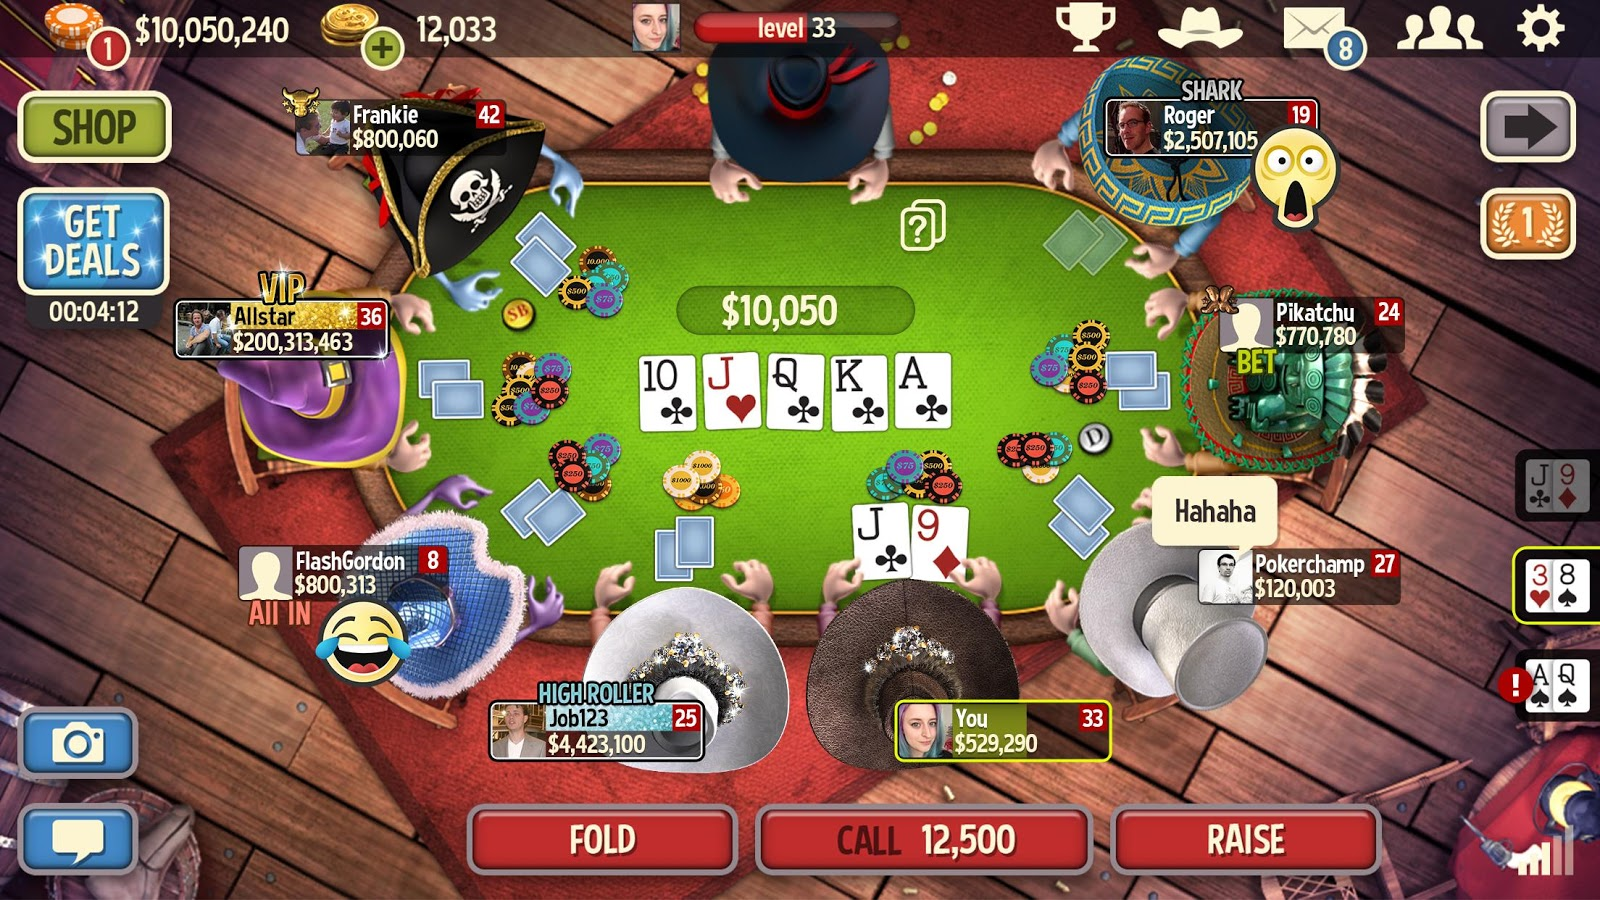 4 card poker online game